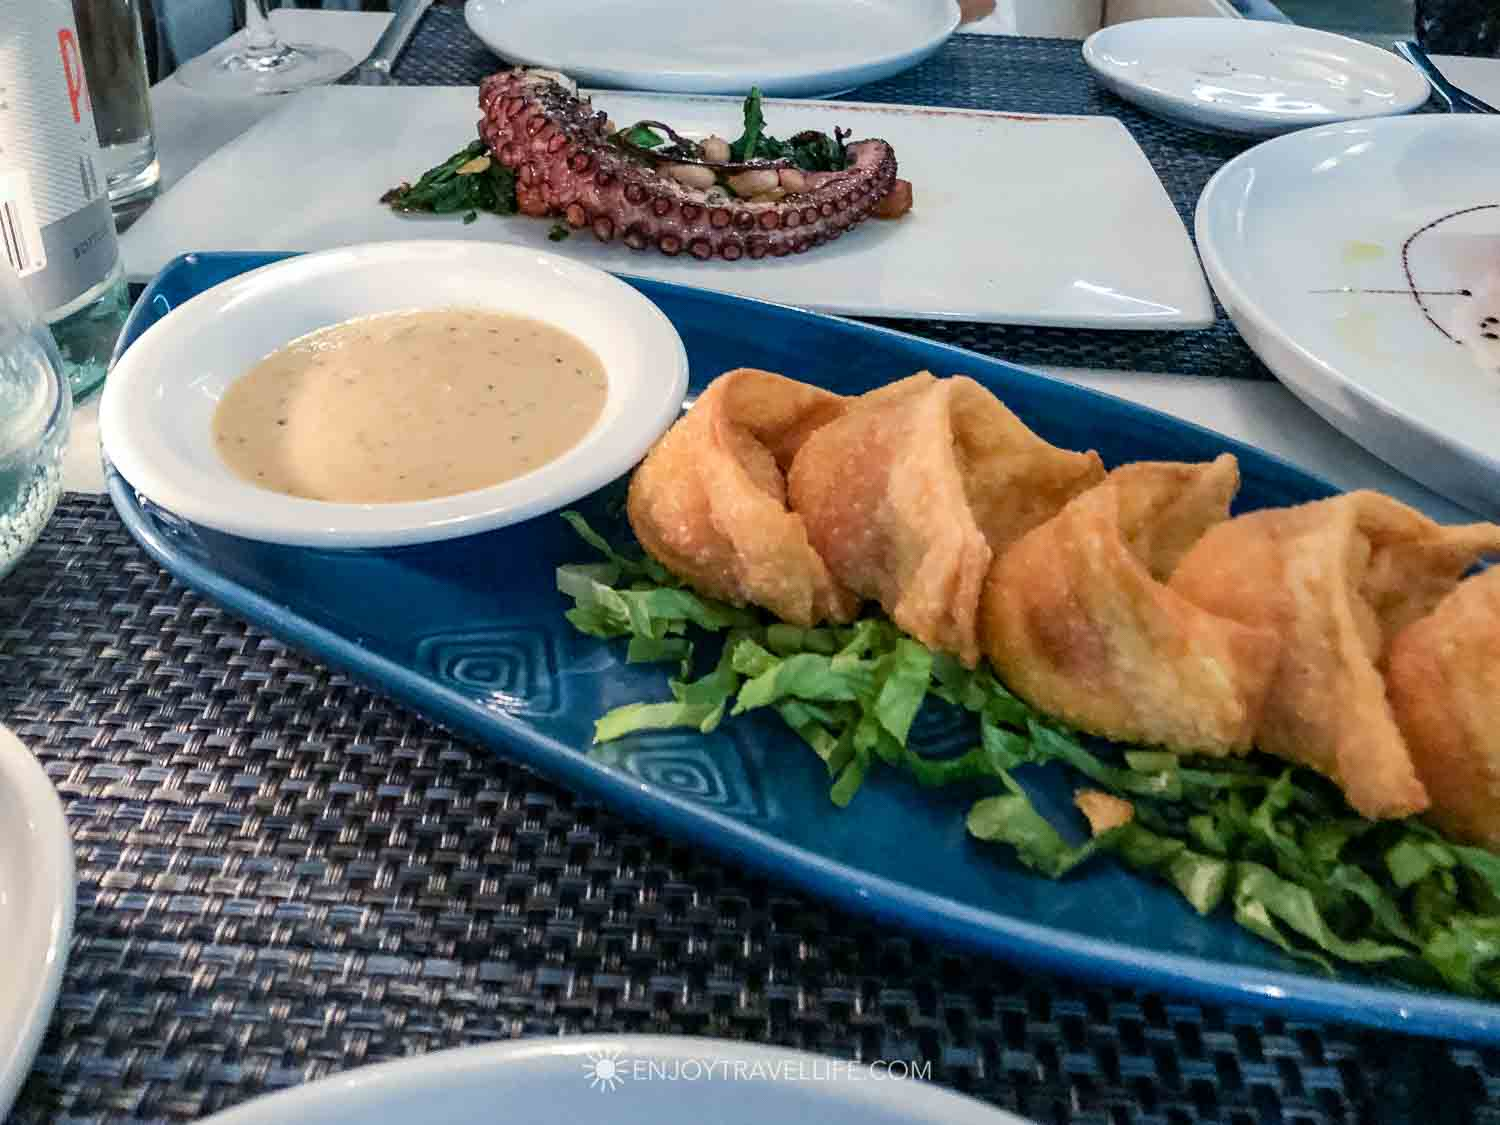 Fried rangoons stuffed with crab and lobster with a spicy dipping sauce